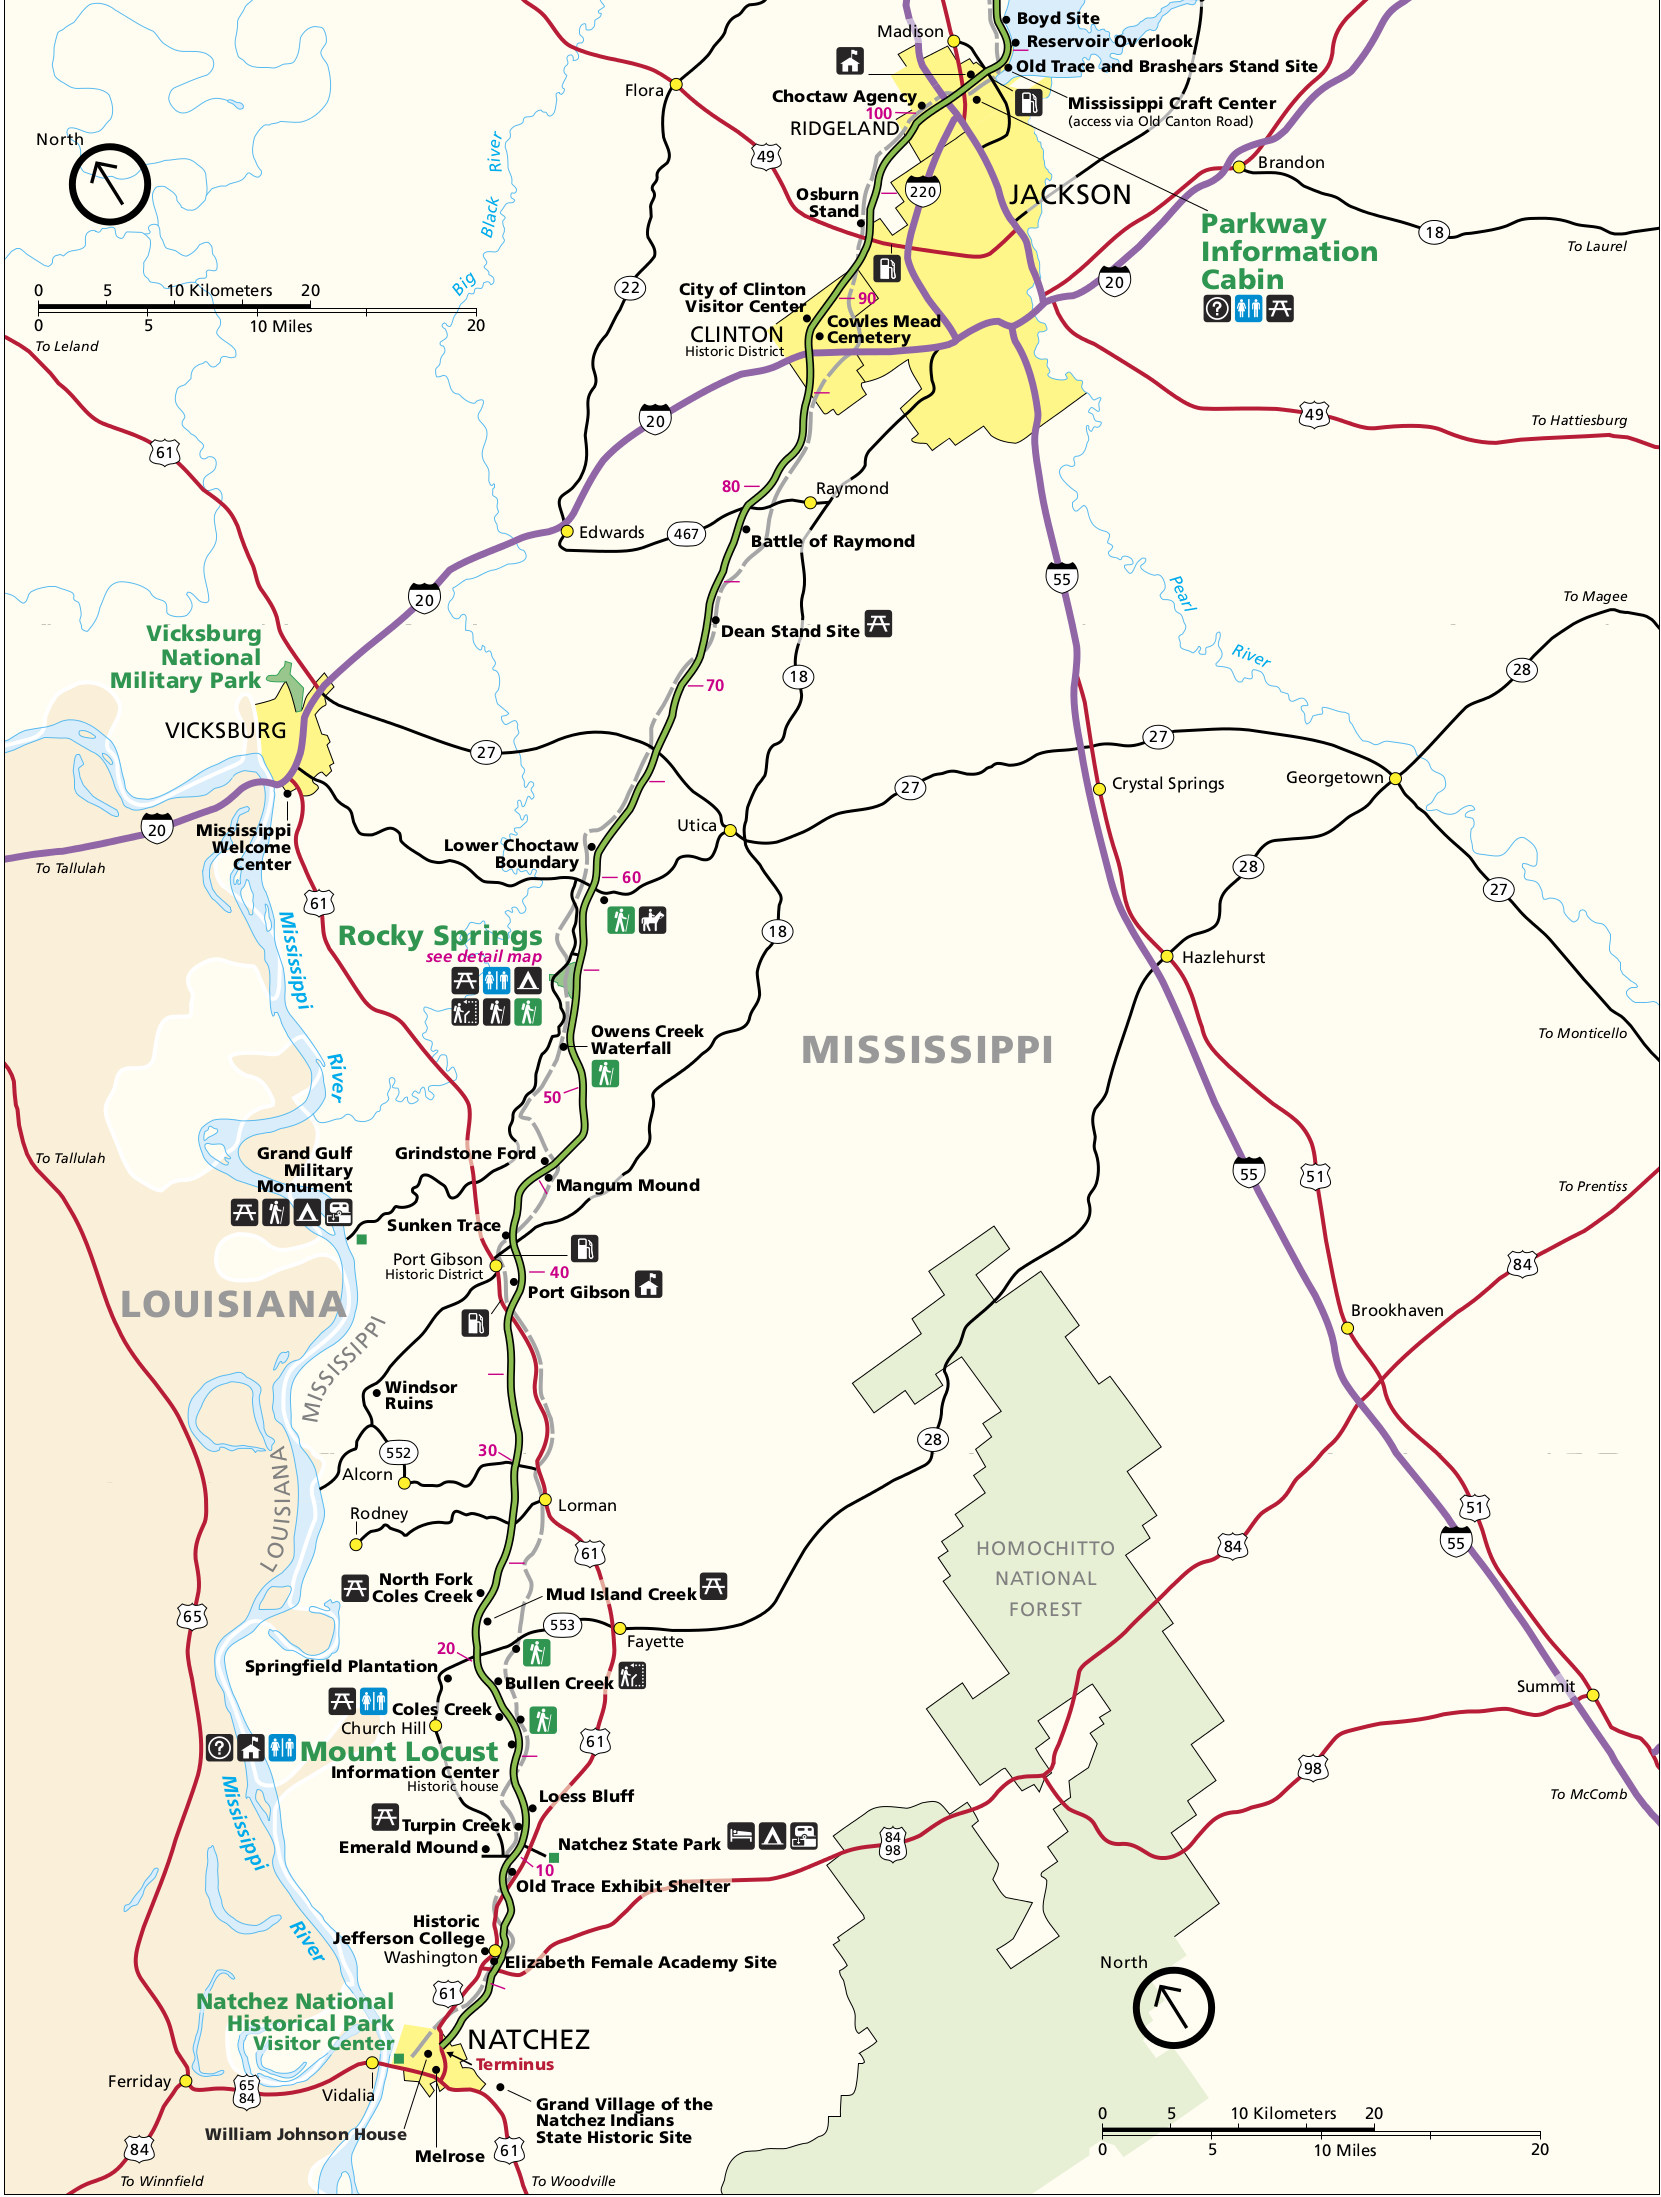 Natchez Trace Map Natchez Trace | NPMaps.  just free maps, period. Natchez Trace Map